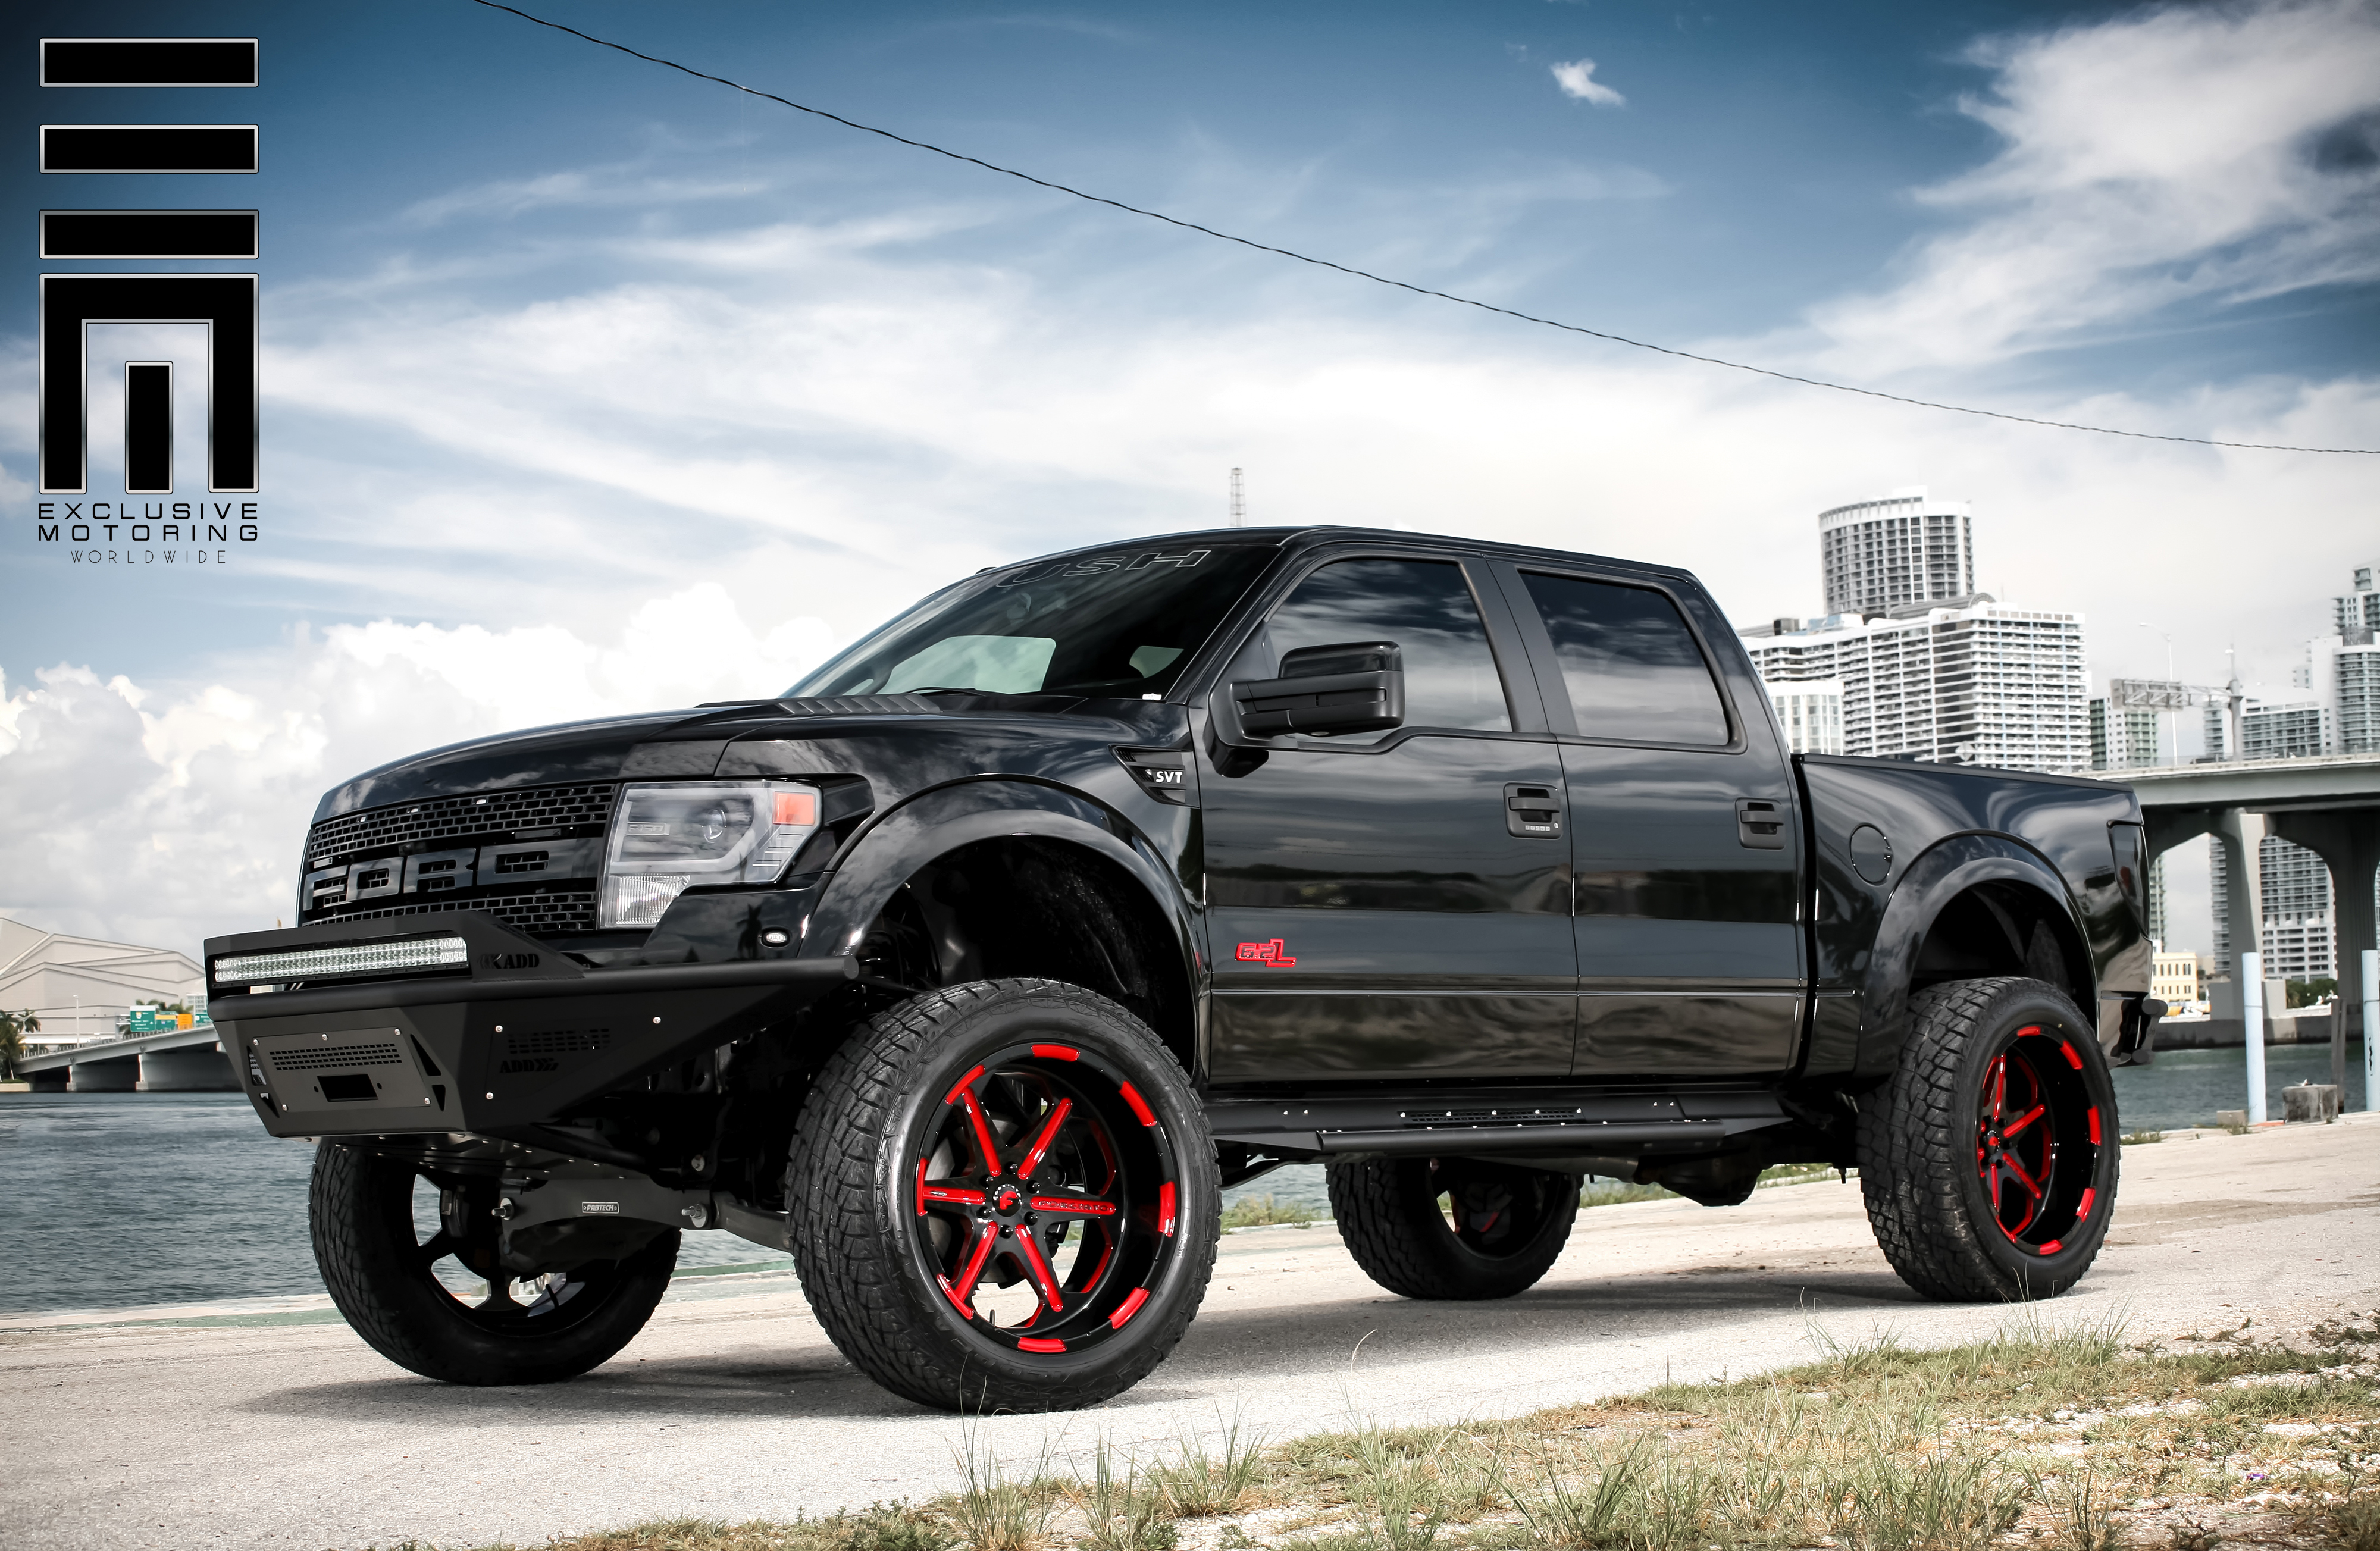 Jon Bones Jones Roush Ford Raptor SVT By Exclusive Motoring